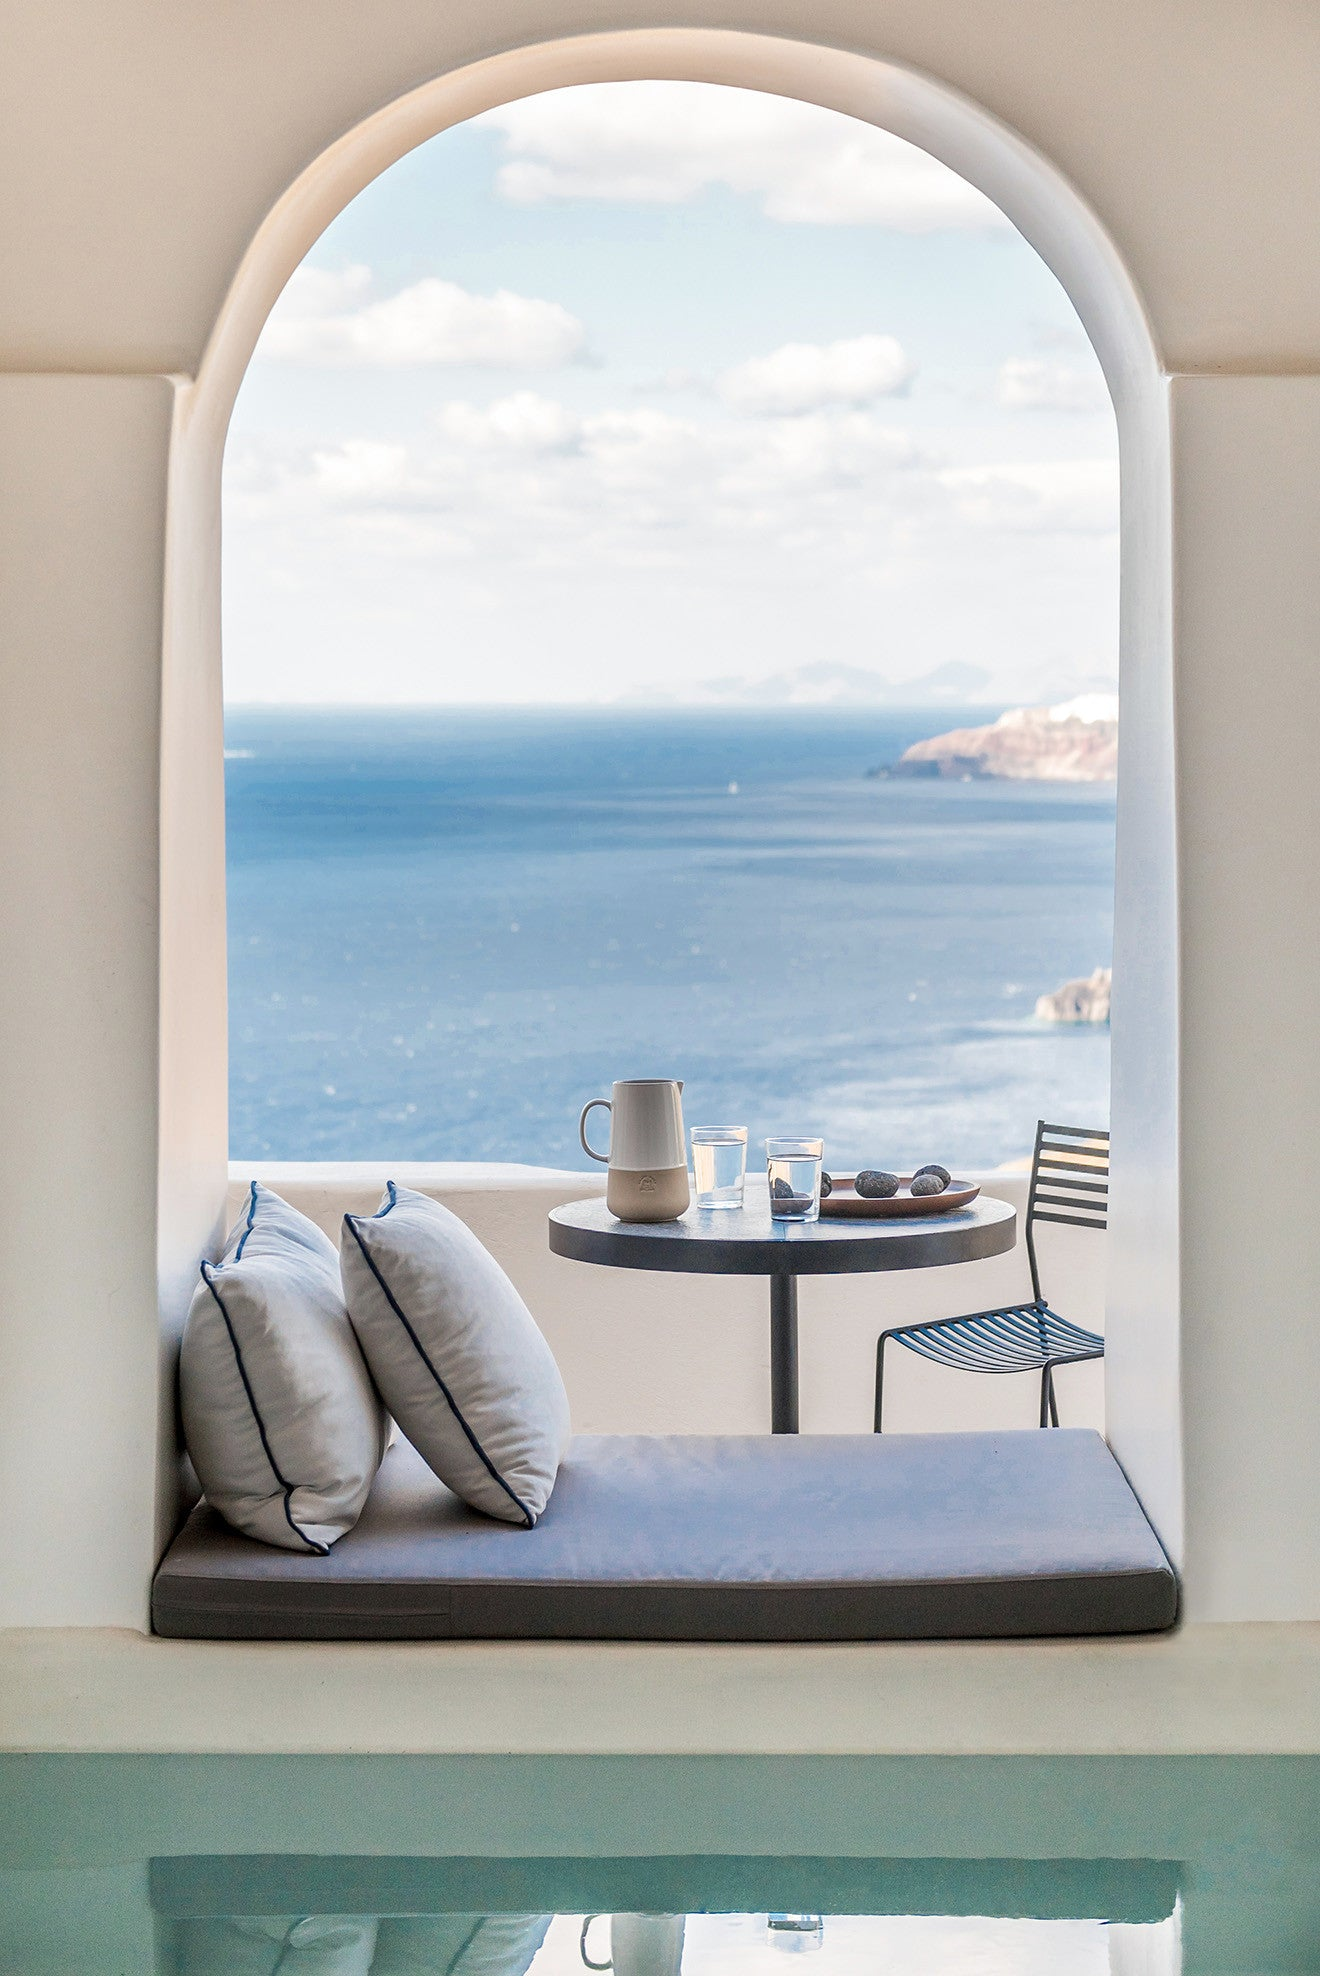 seating within the archway window, looking out across the sea - Laboratorium designs the beautiful Porto Fira Suites in Santorini